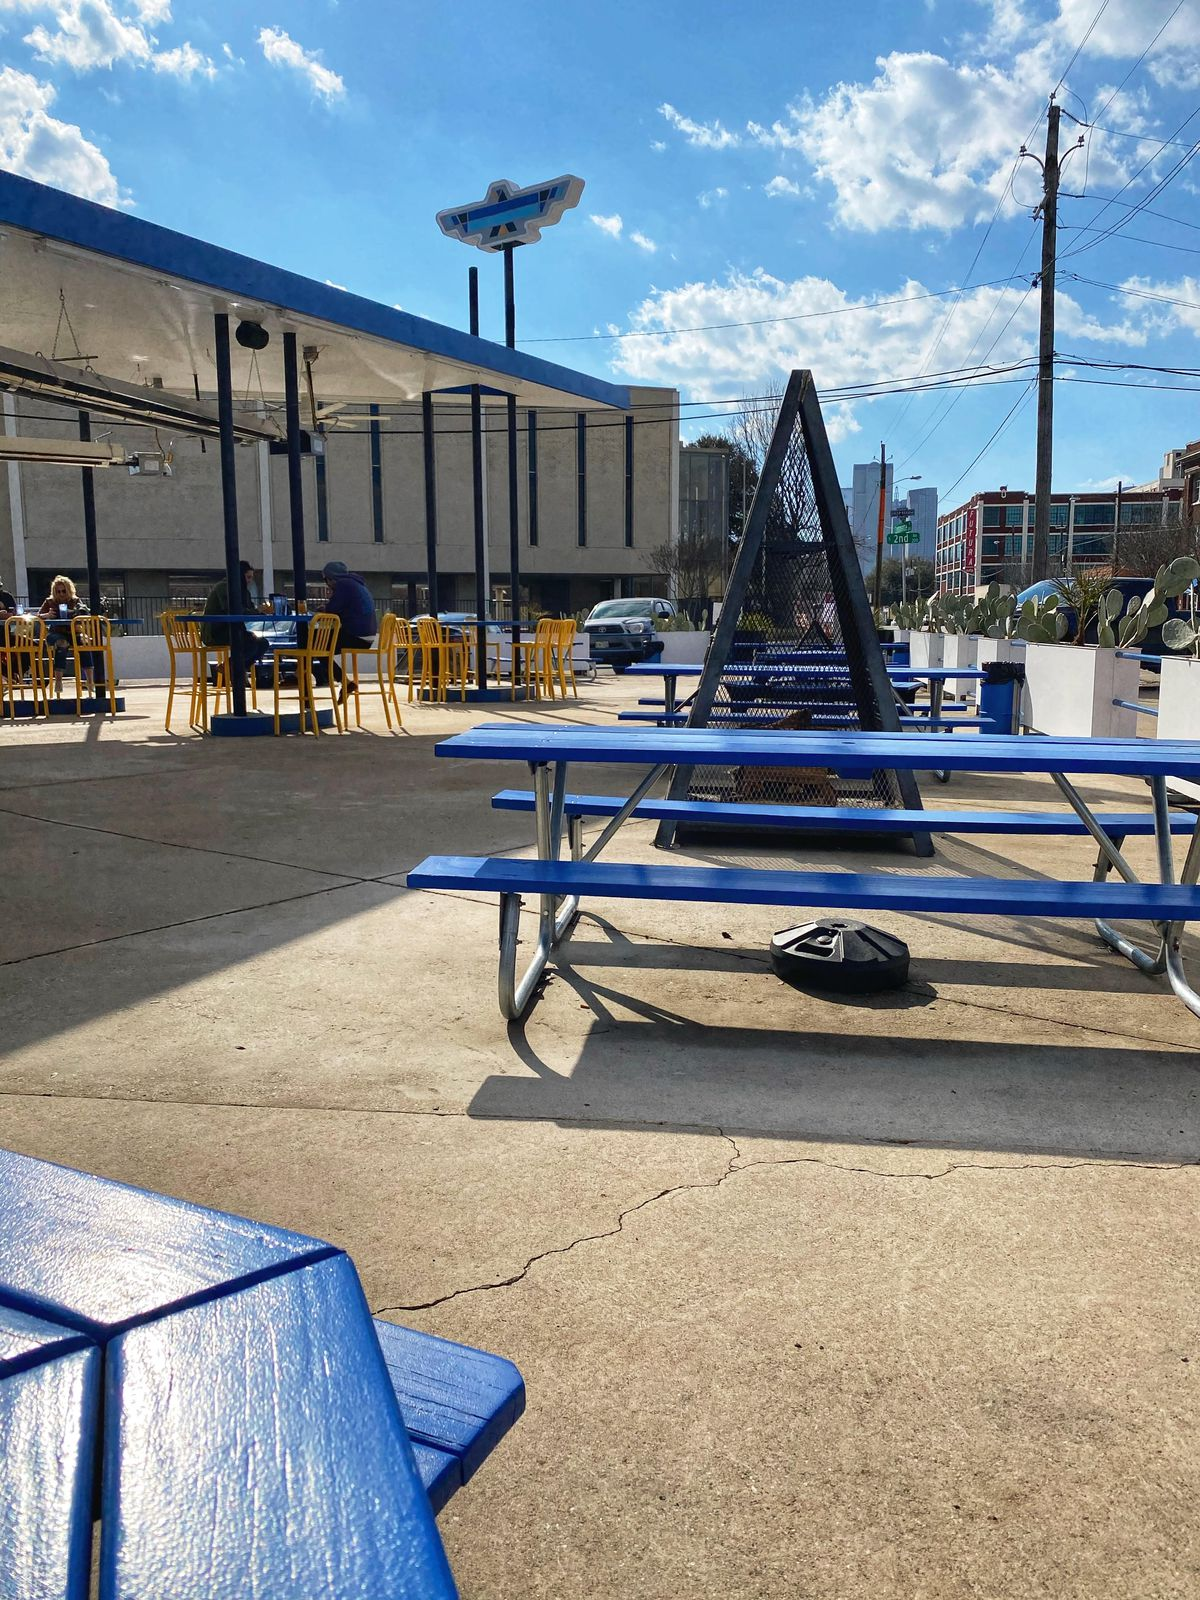 Blue picnic tables set against a backdrop of blue skies and concrete on the ground